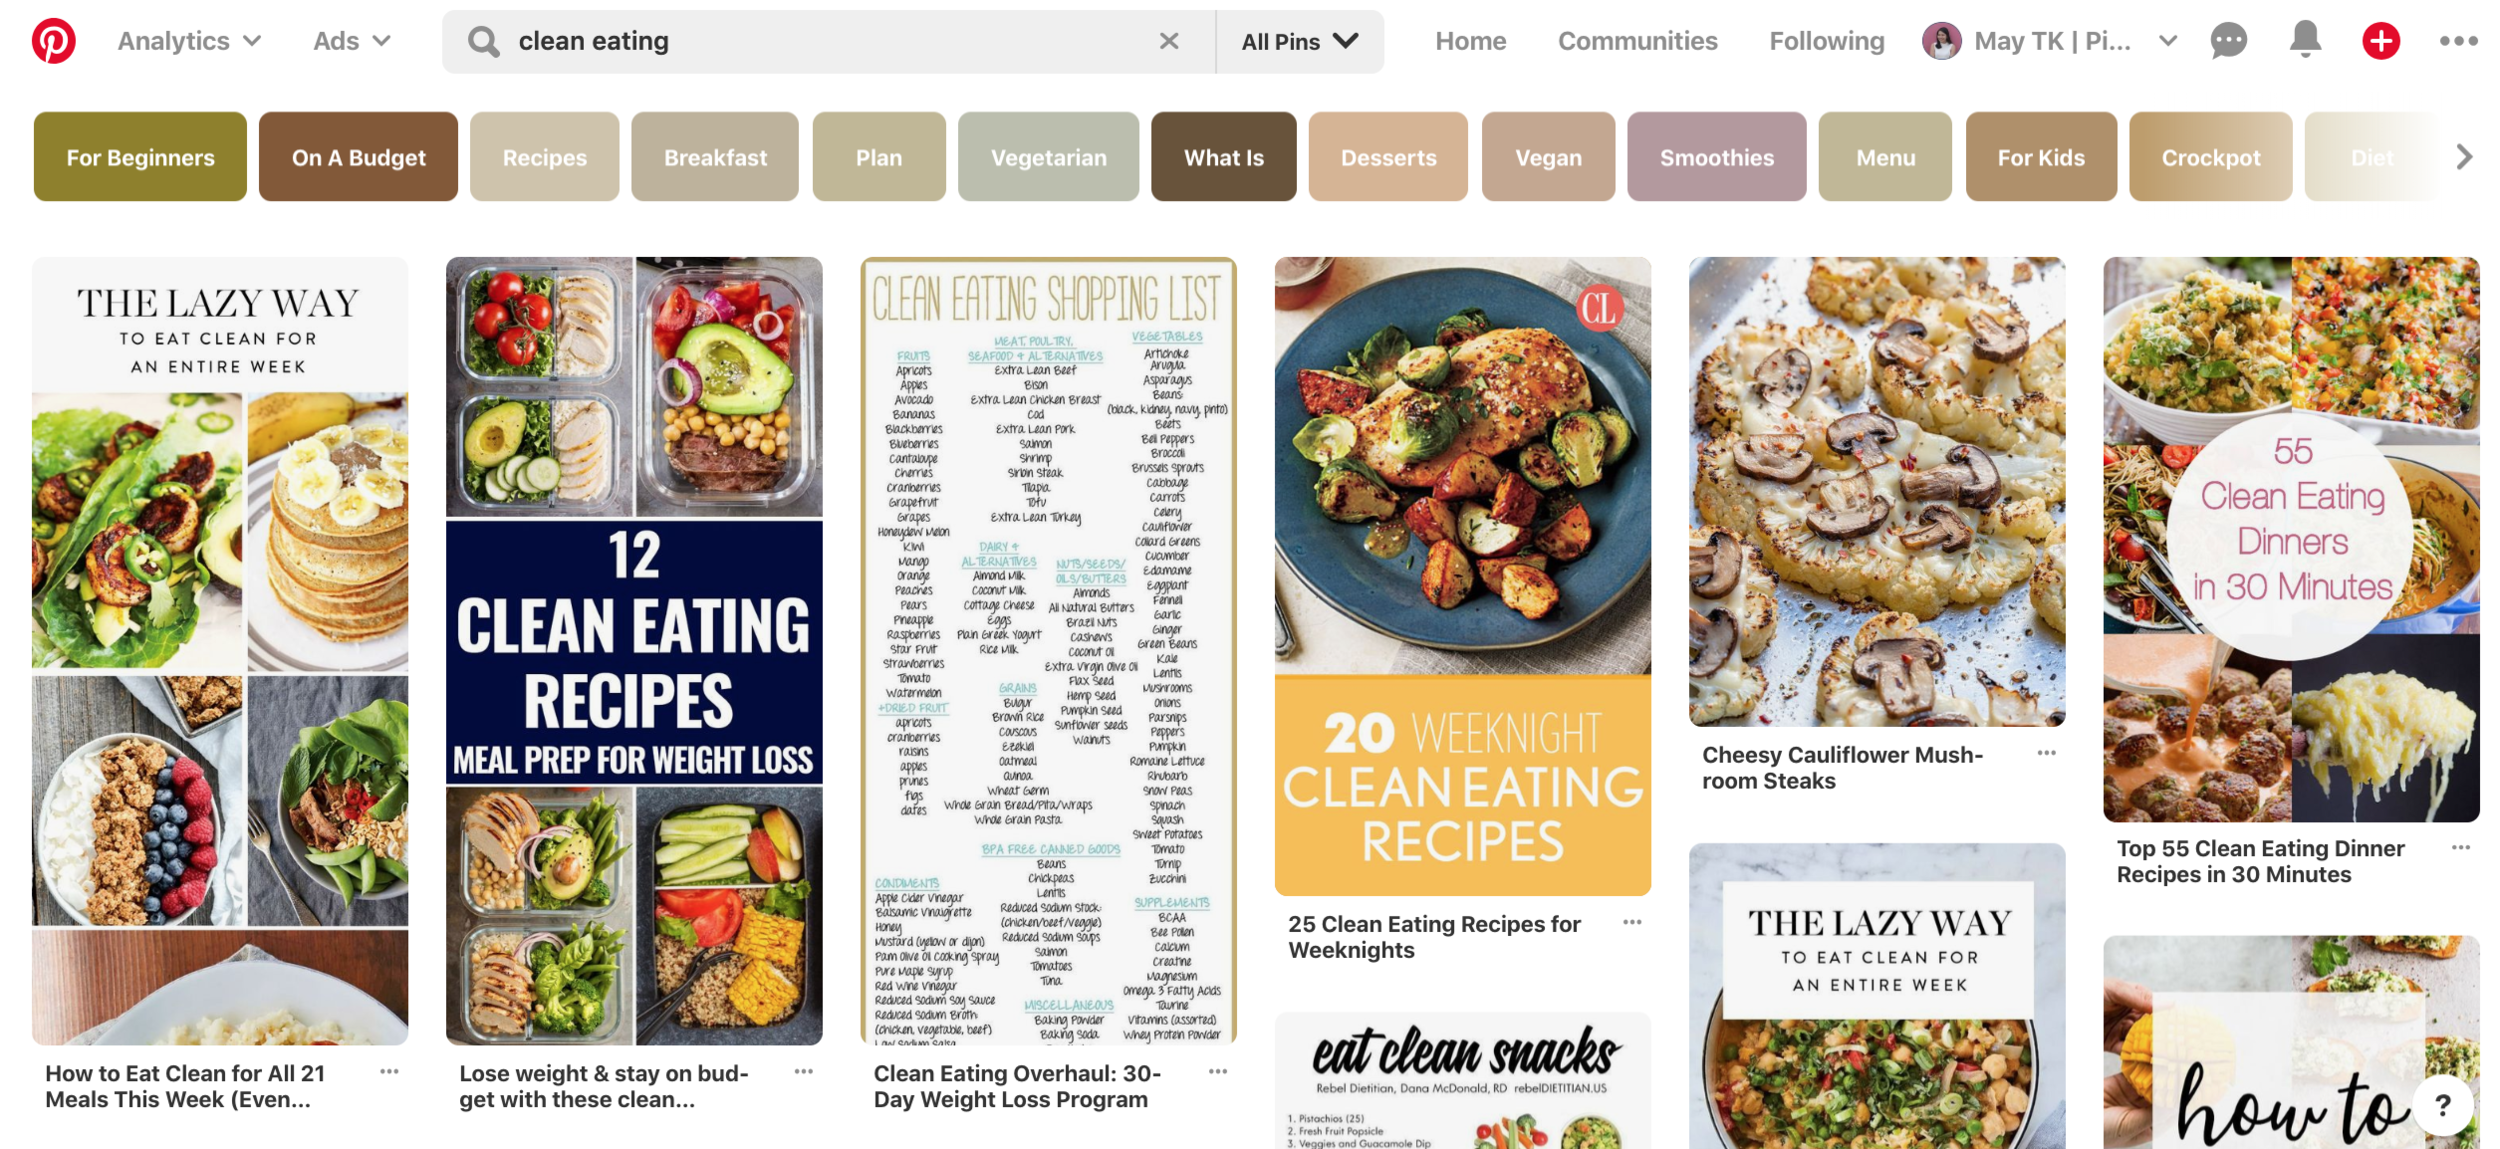 Pinterest search results for clean eating - Untangled Pinterest Marketing for bloggers and Content Creators